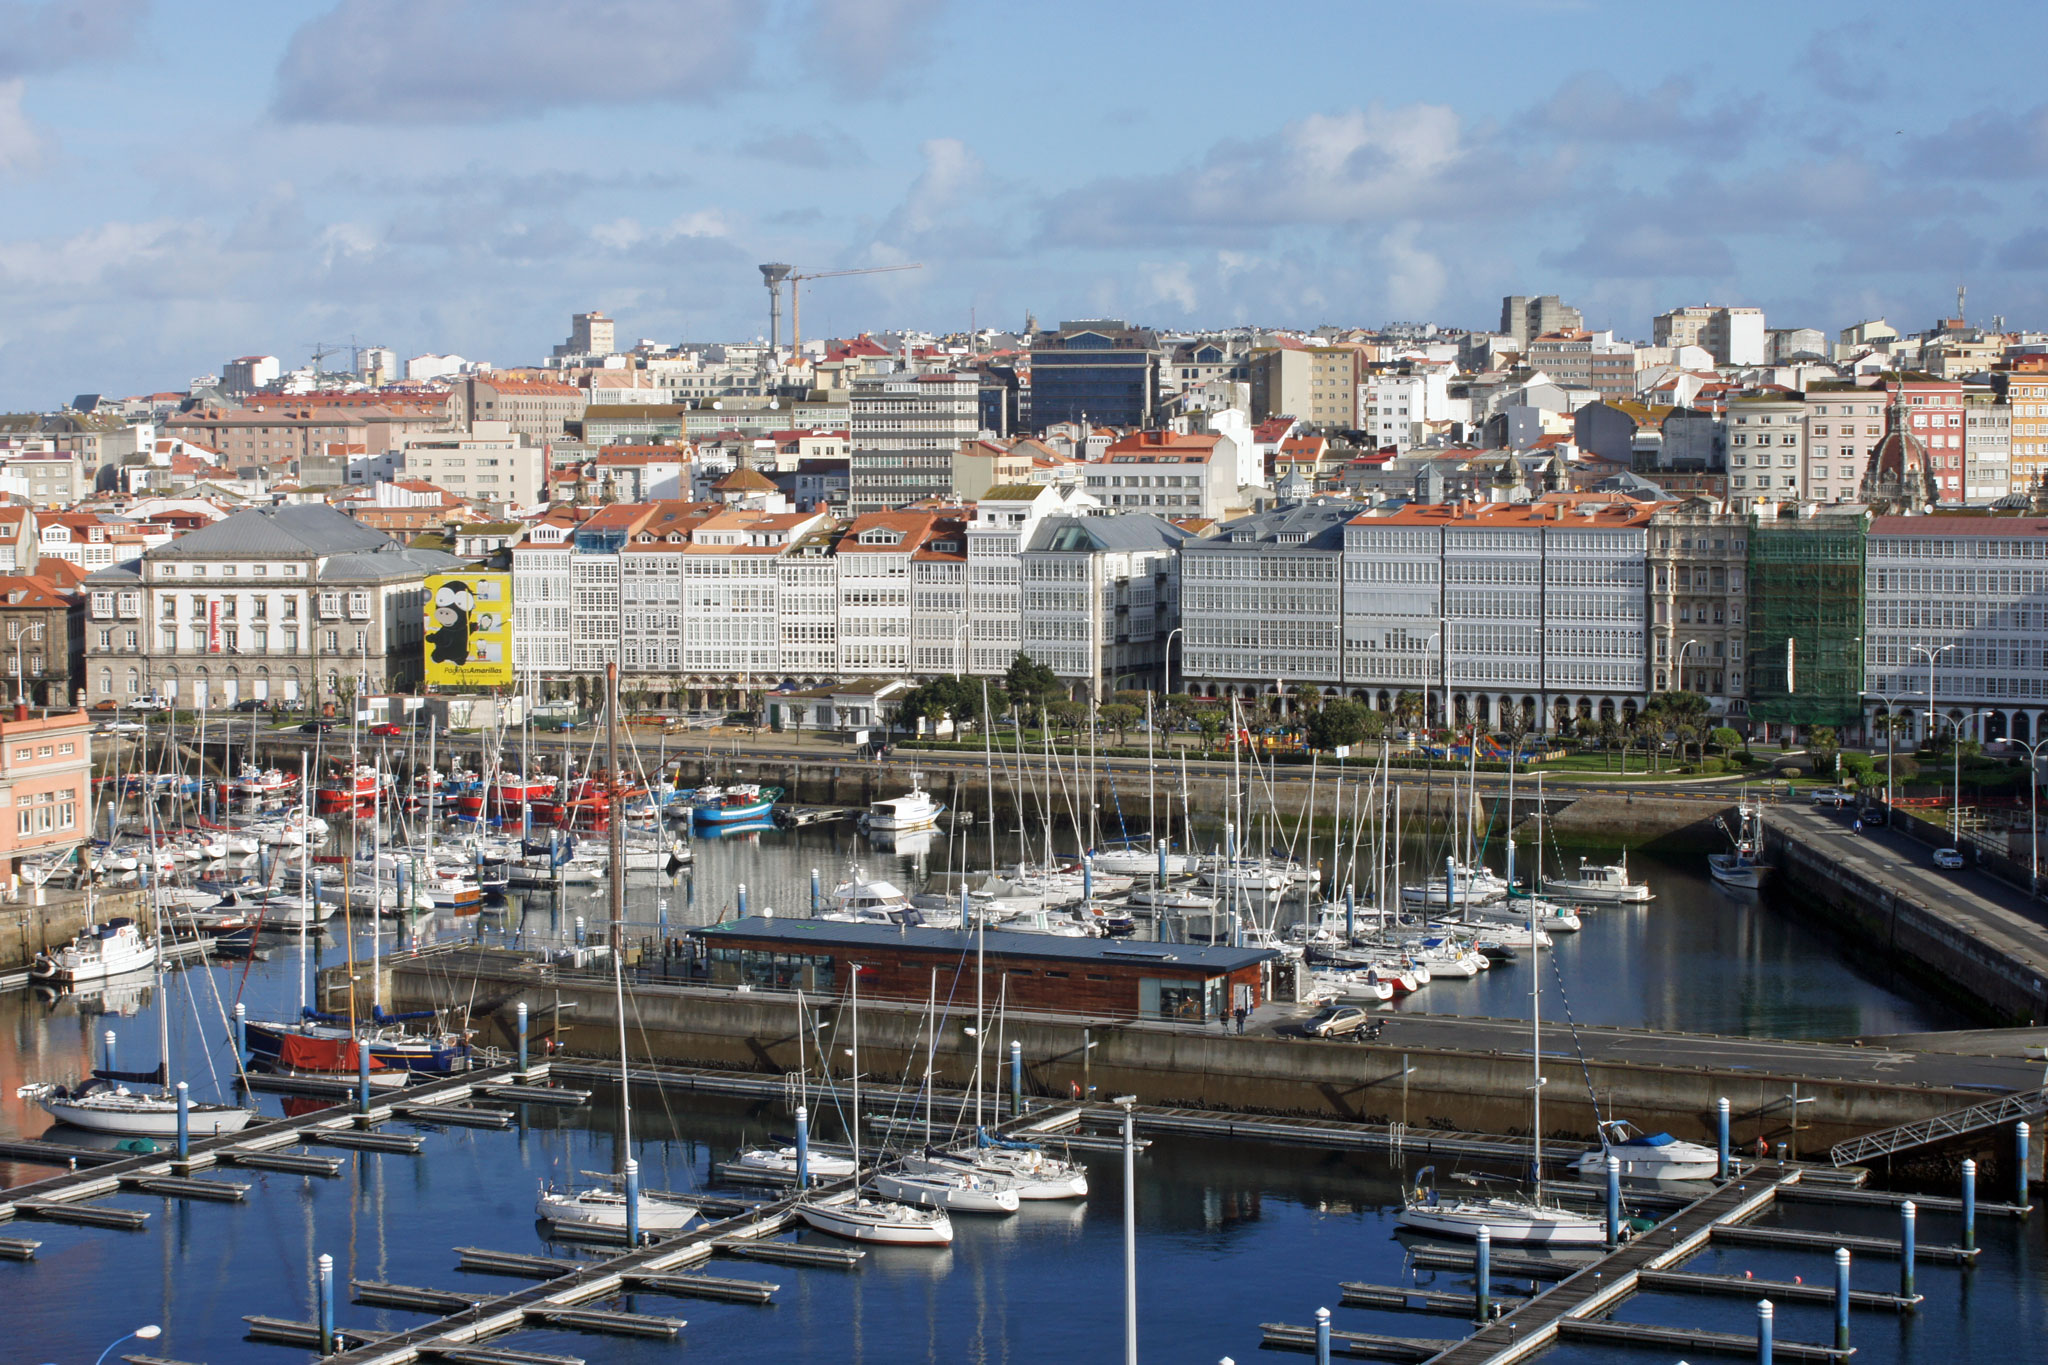 La Coruna Spain  city photos gallery : La Coruna INDEPENDENCE OF THE SEAS Cruise Photo: © Ian Boyle ...